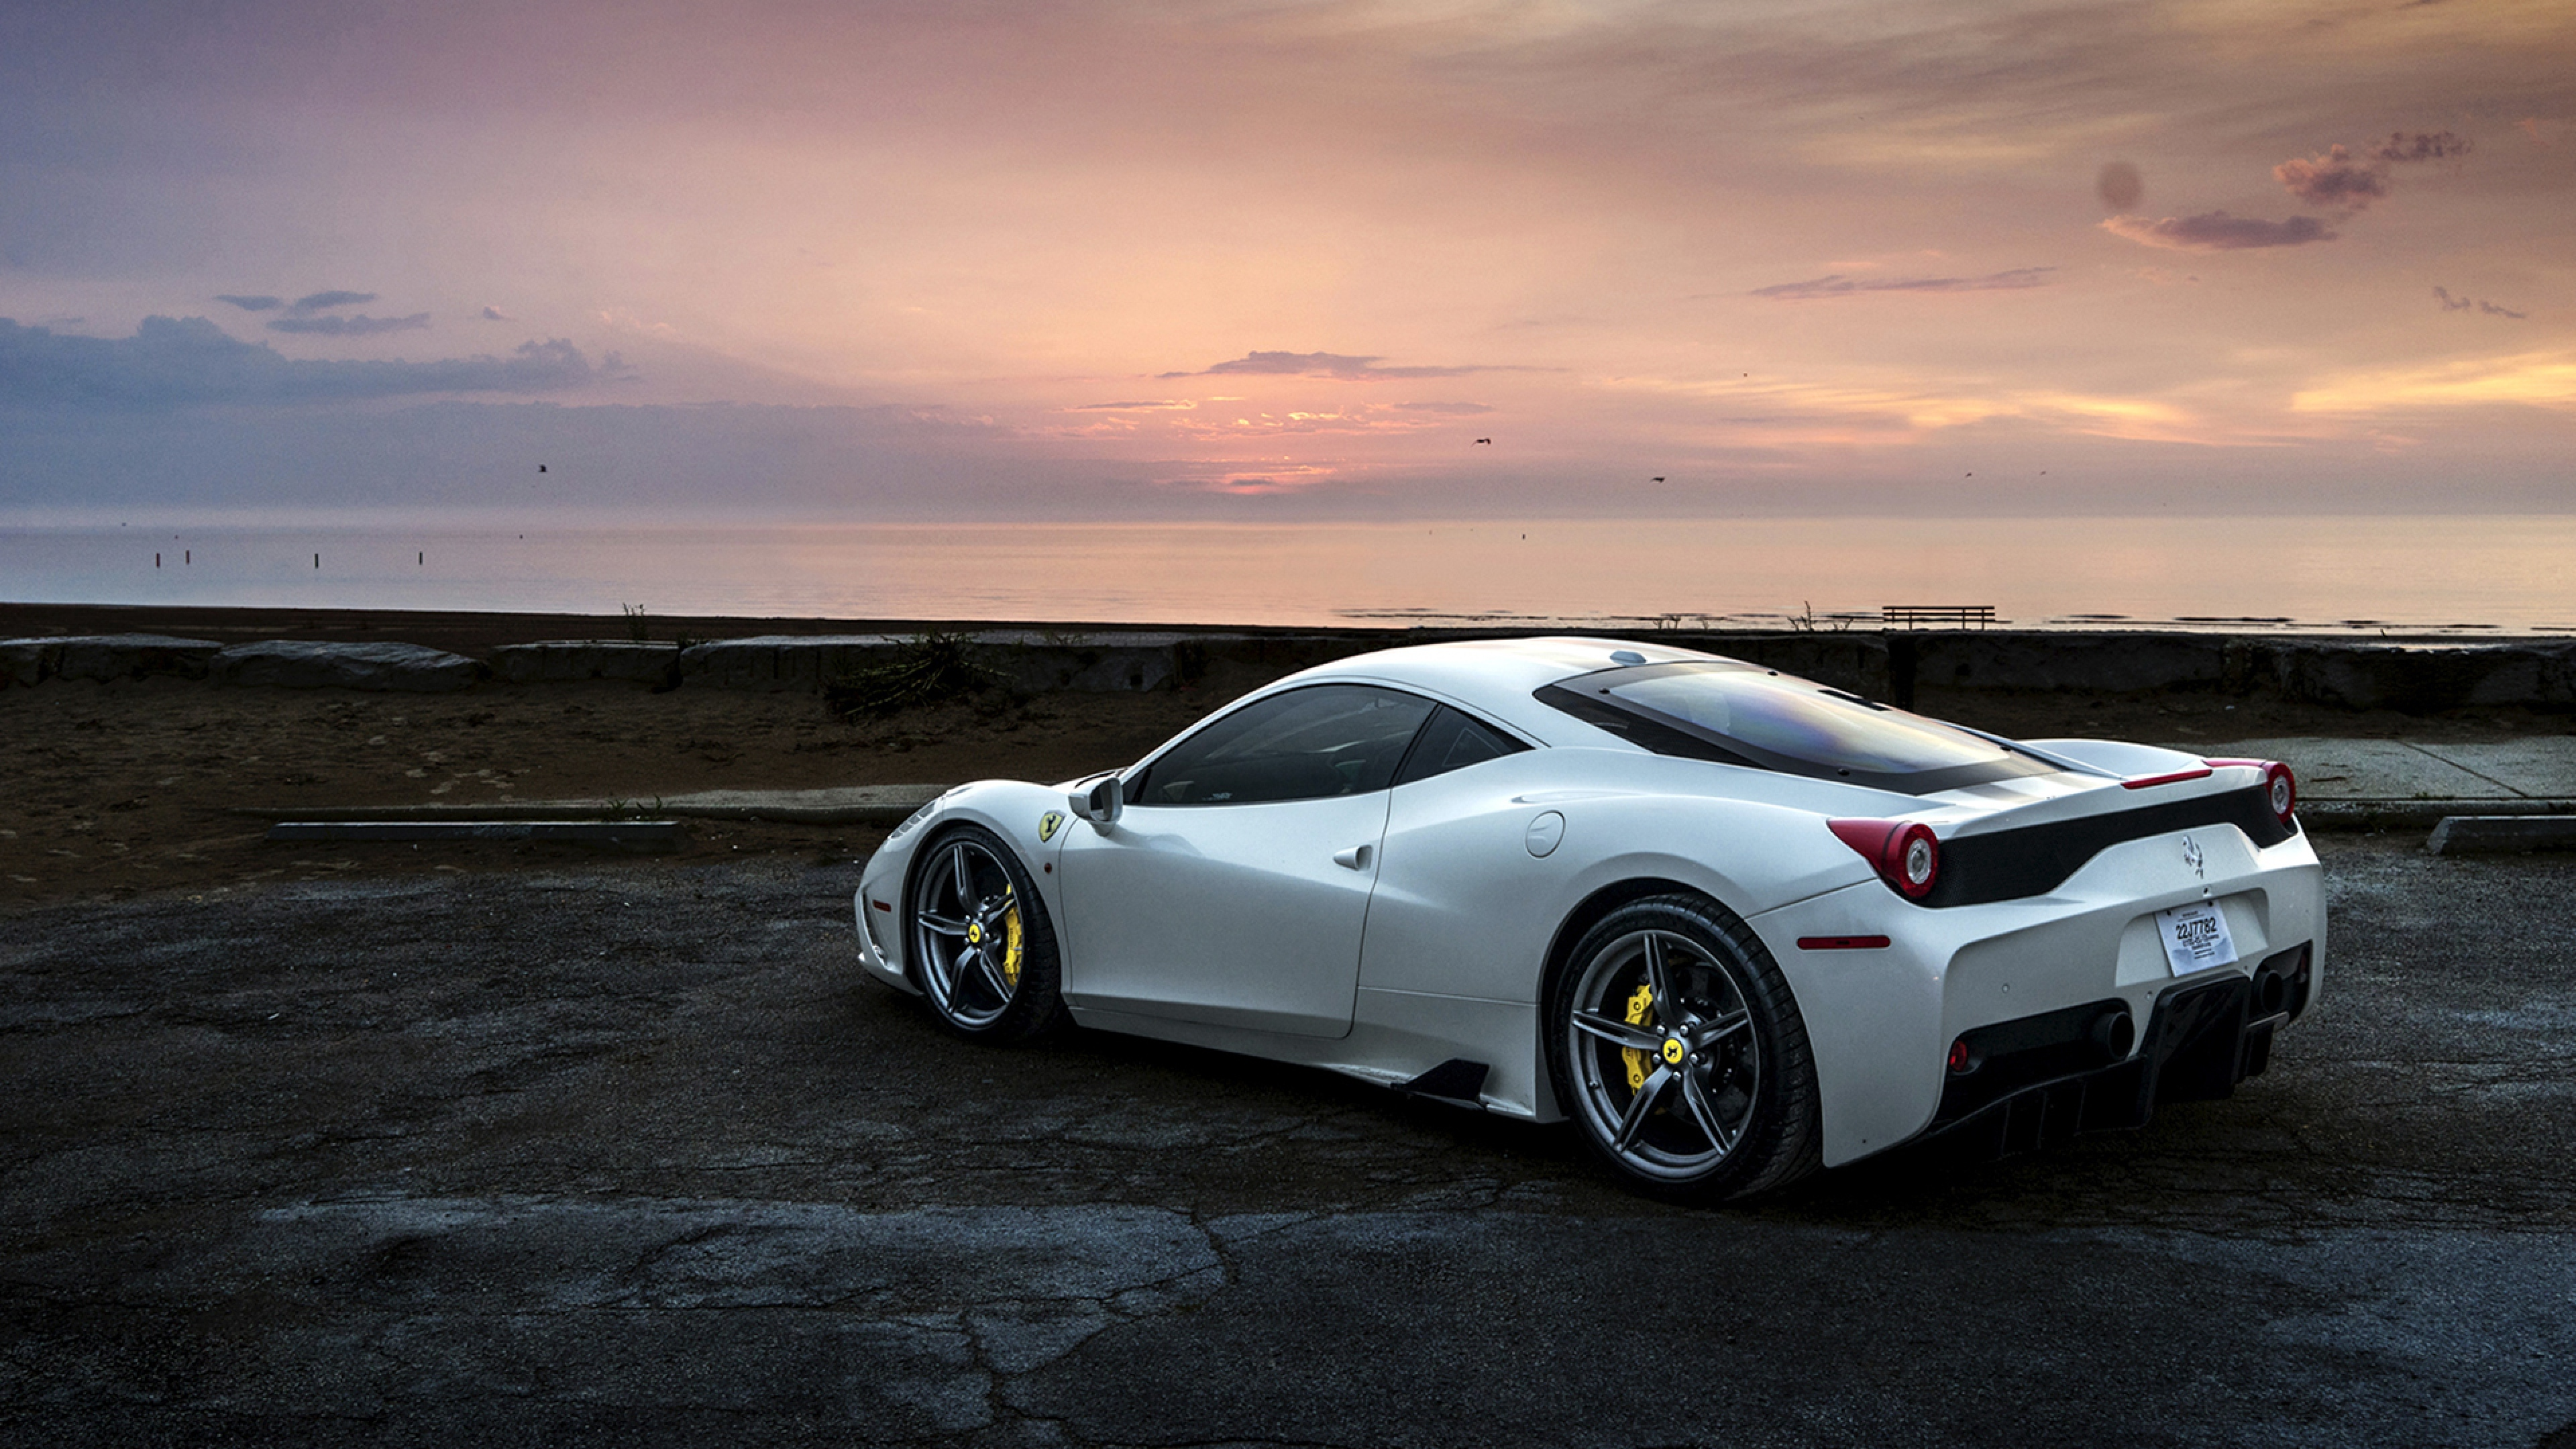 Car Wallpaper 720x1280 Ferrari 458 White Hd Cars 4k Wallpapers Images